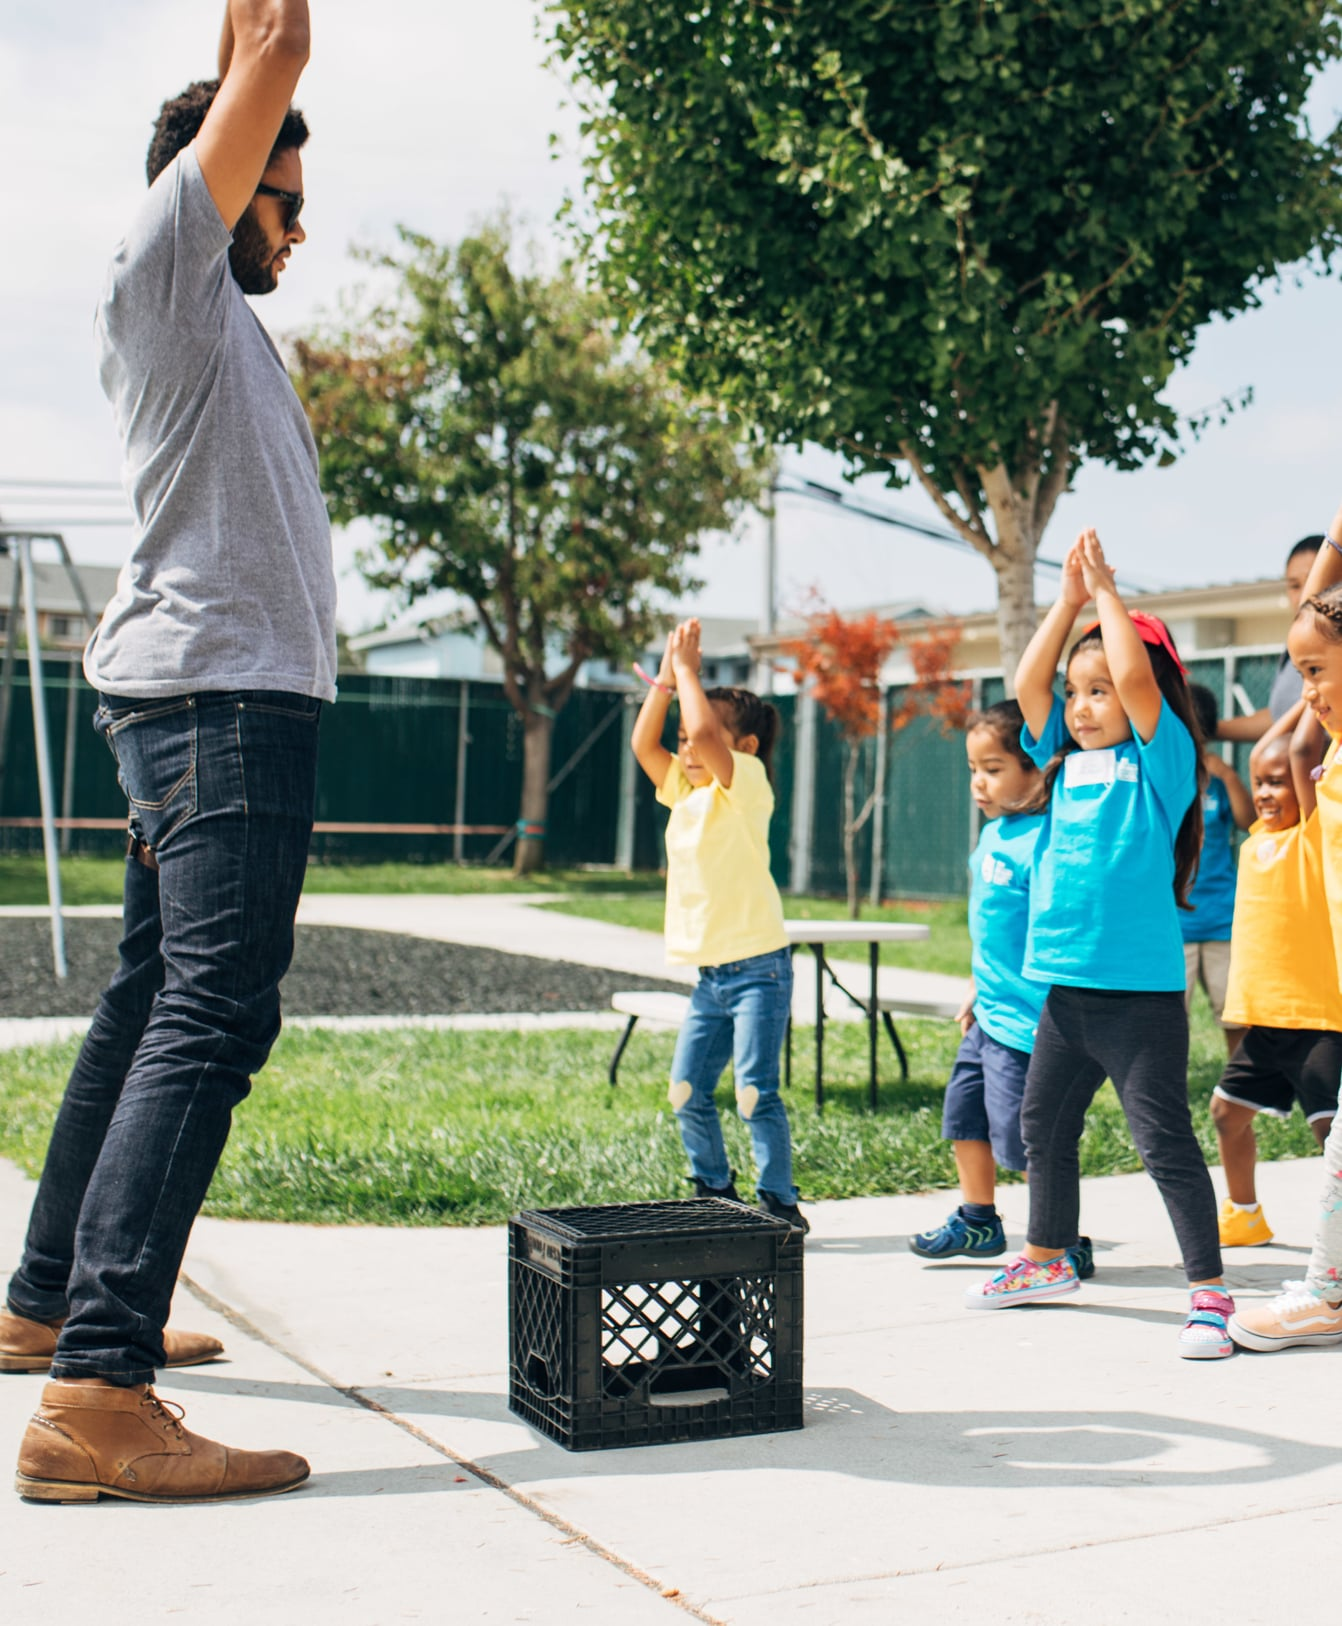 Mr. Vosa Cavu-Litman leading a class of Pre-Kindergarteners in an outdoor activity on the first day of school, at the Primary School in East Palo Alto